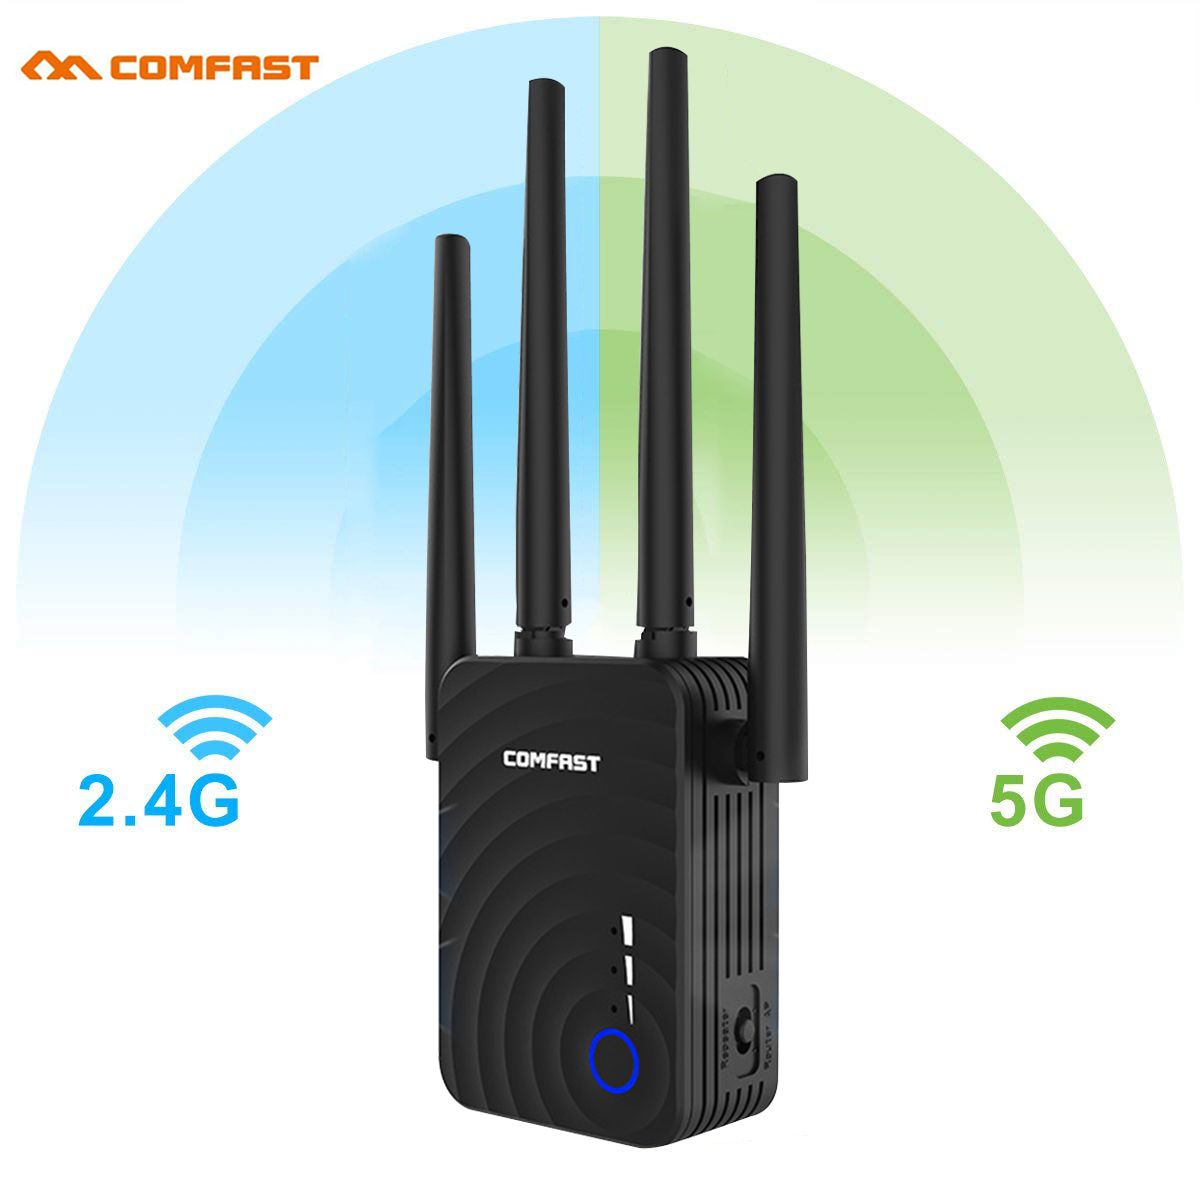 COMFAST WR754AC 300/1200Mbps Wireless Router WiFi Range Extender 2.4/5Ghz Dual Band Repeater Signal Booster W/ Ethernet Antennas